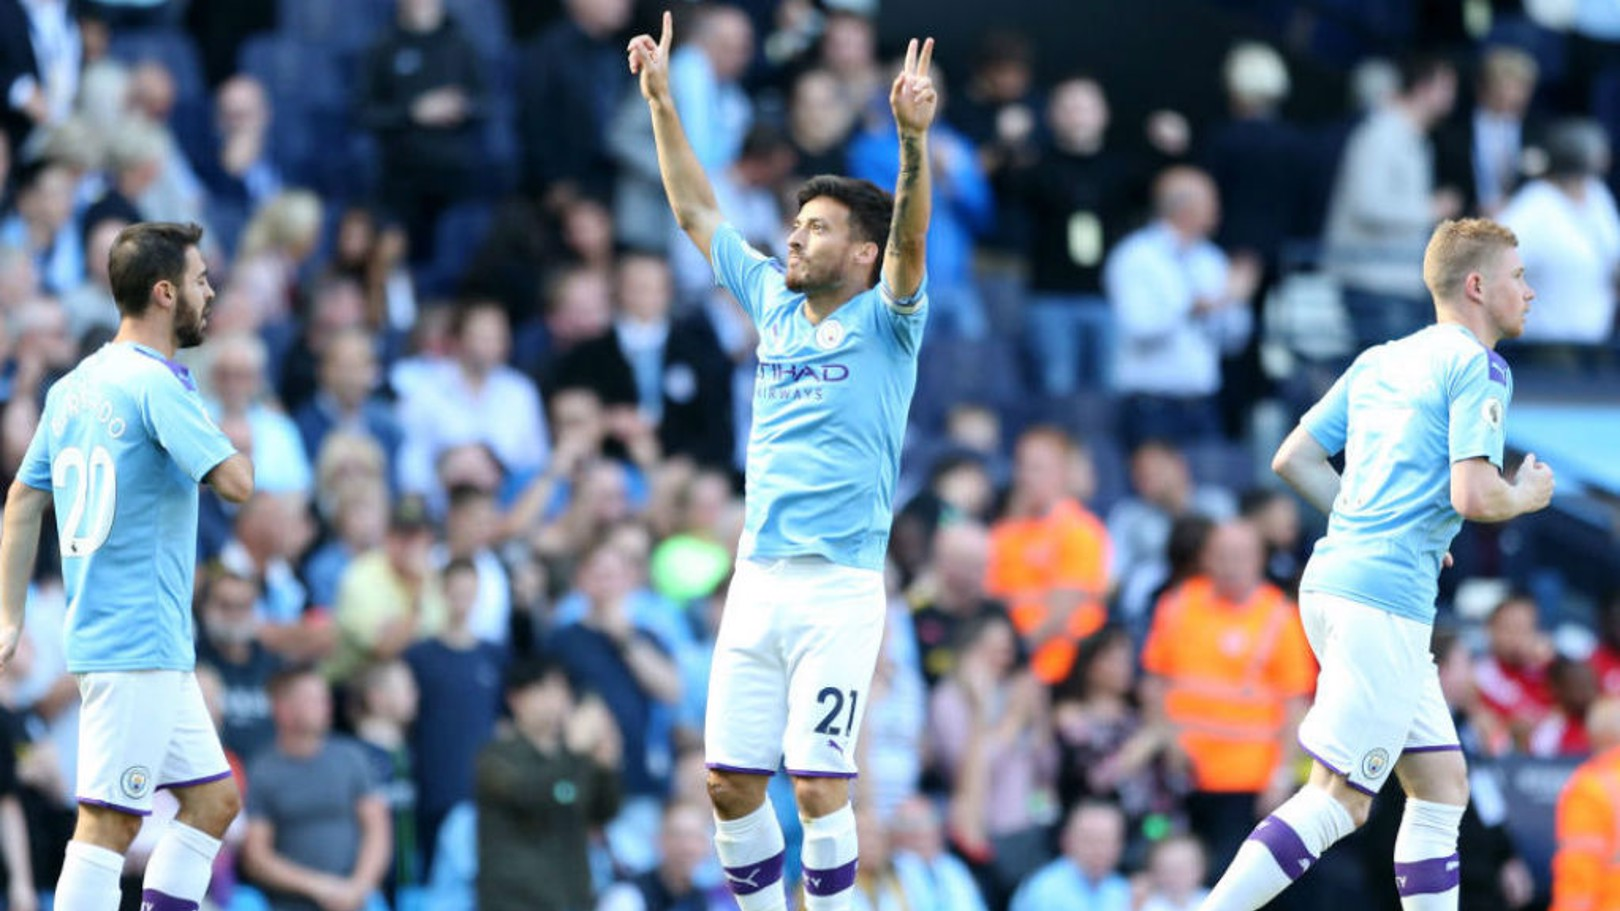 STRIKE ONE: David Silva celebrates after his opener